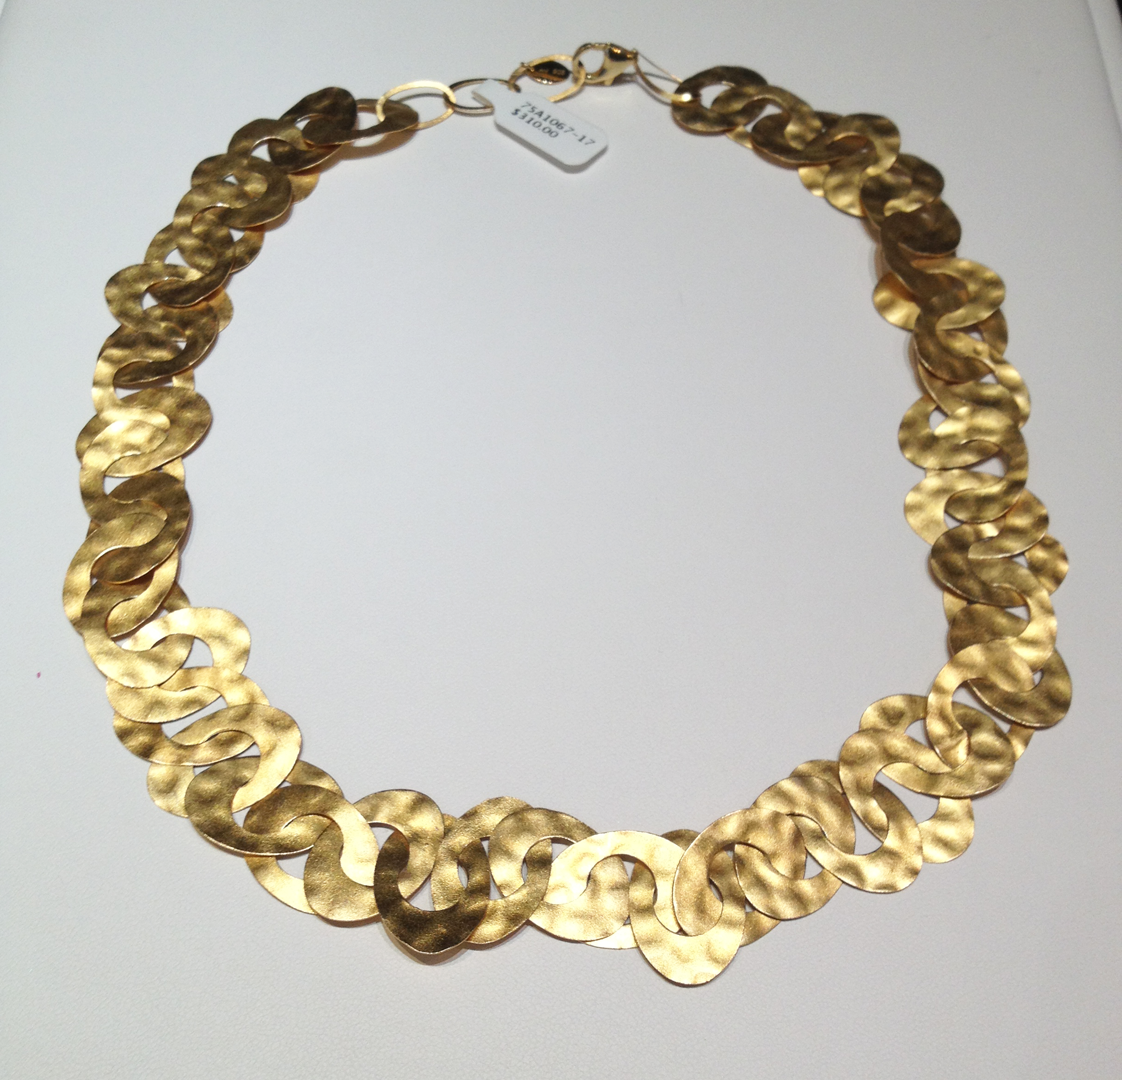 18KT yellow gold verneil over sterling silver large Caravan necklace